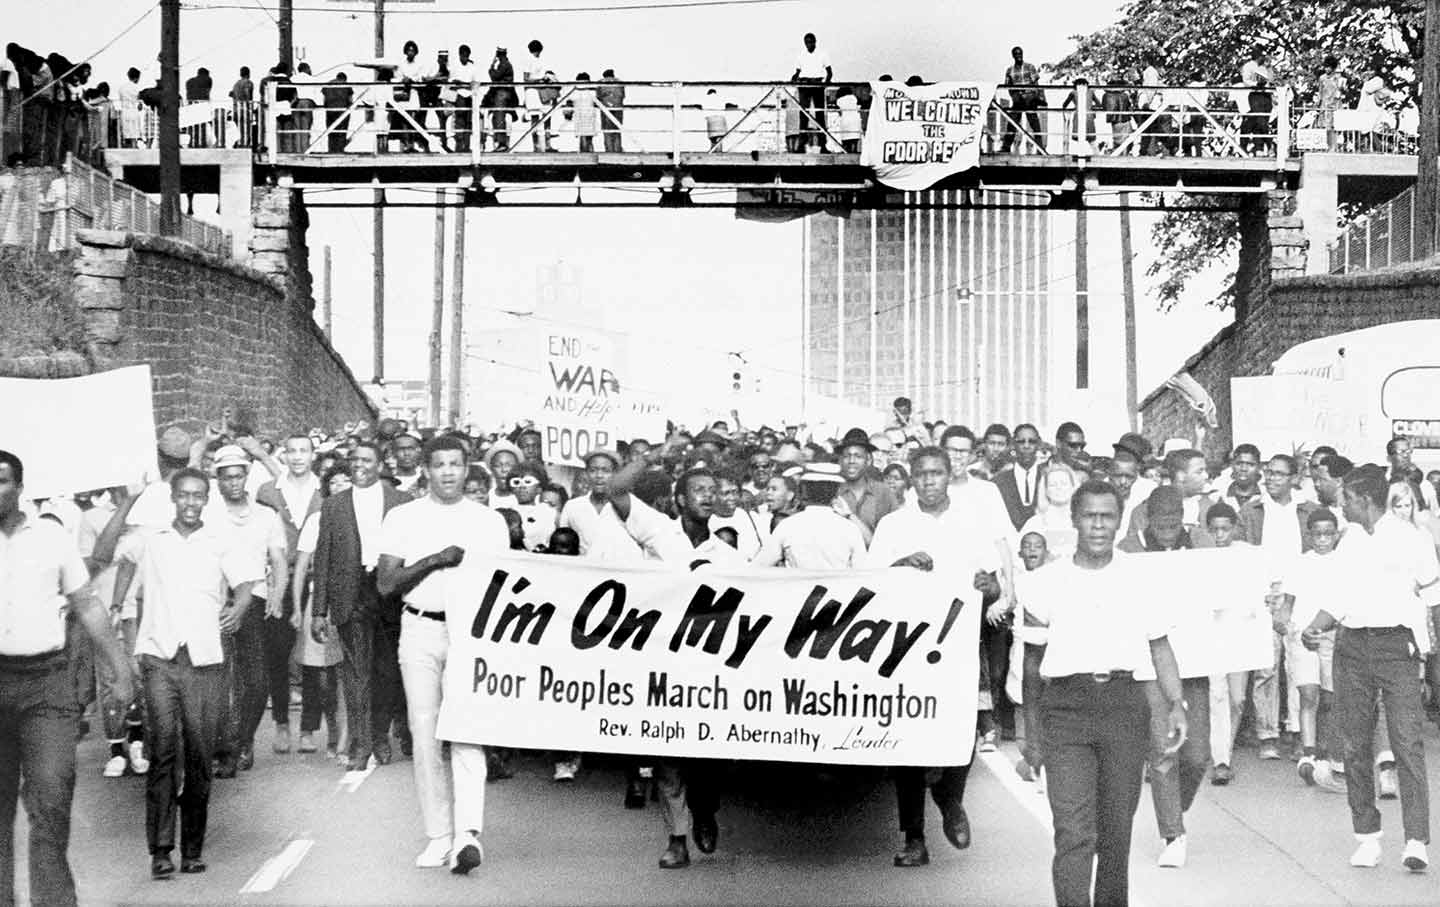 Poor People's march